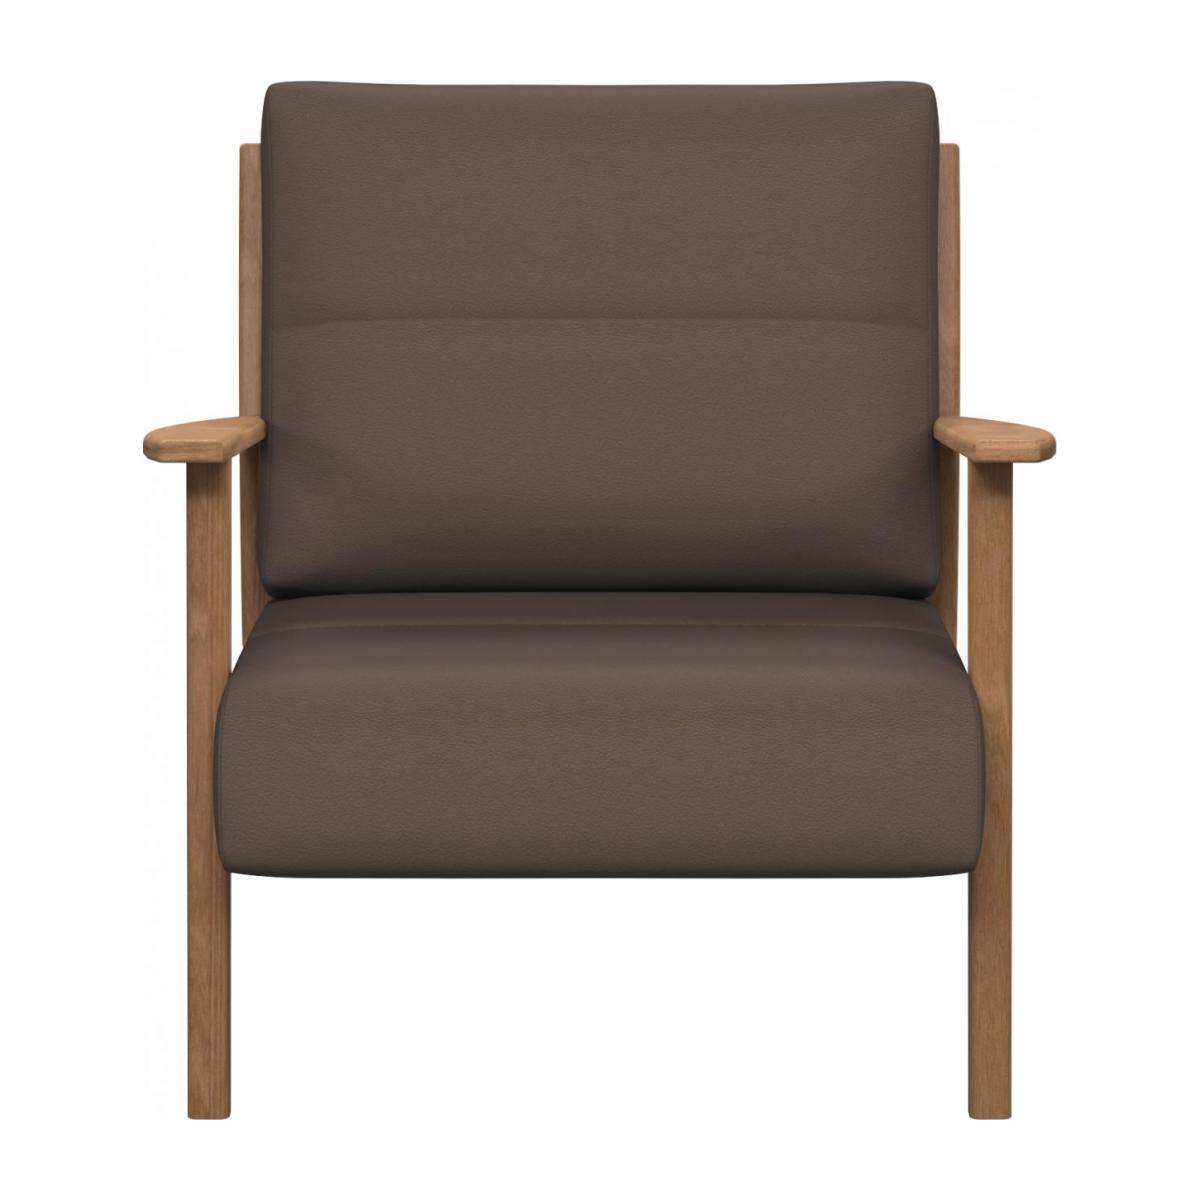 Armchair in Eton veined leather, stone n°2